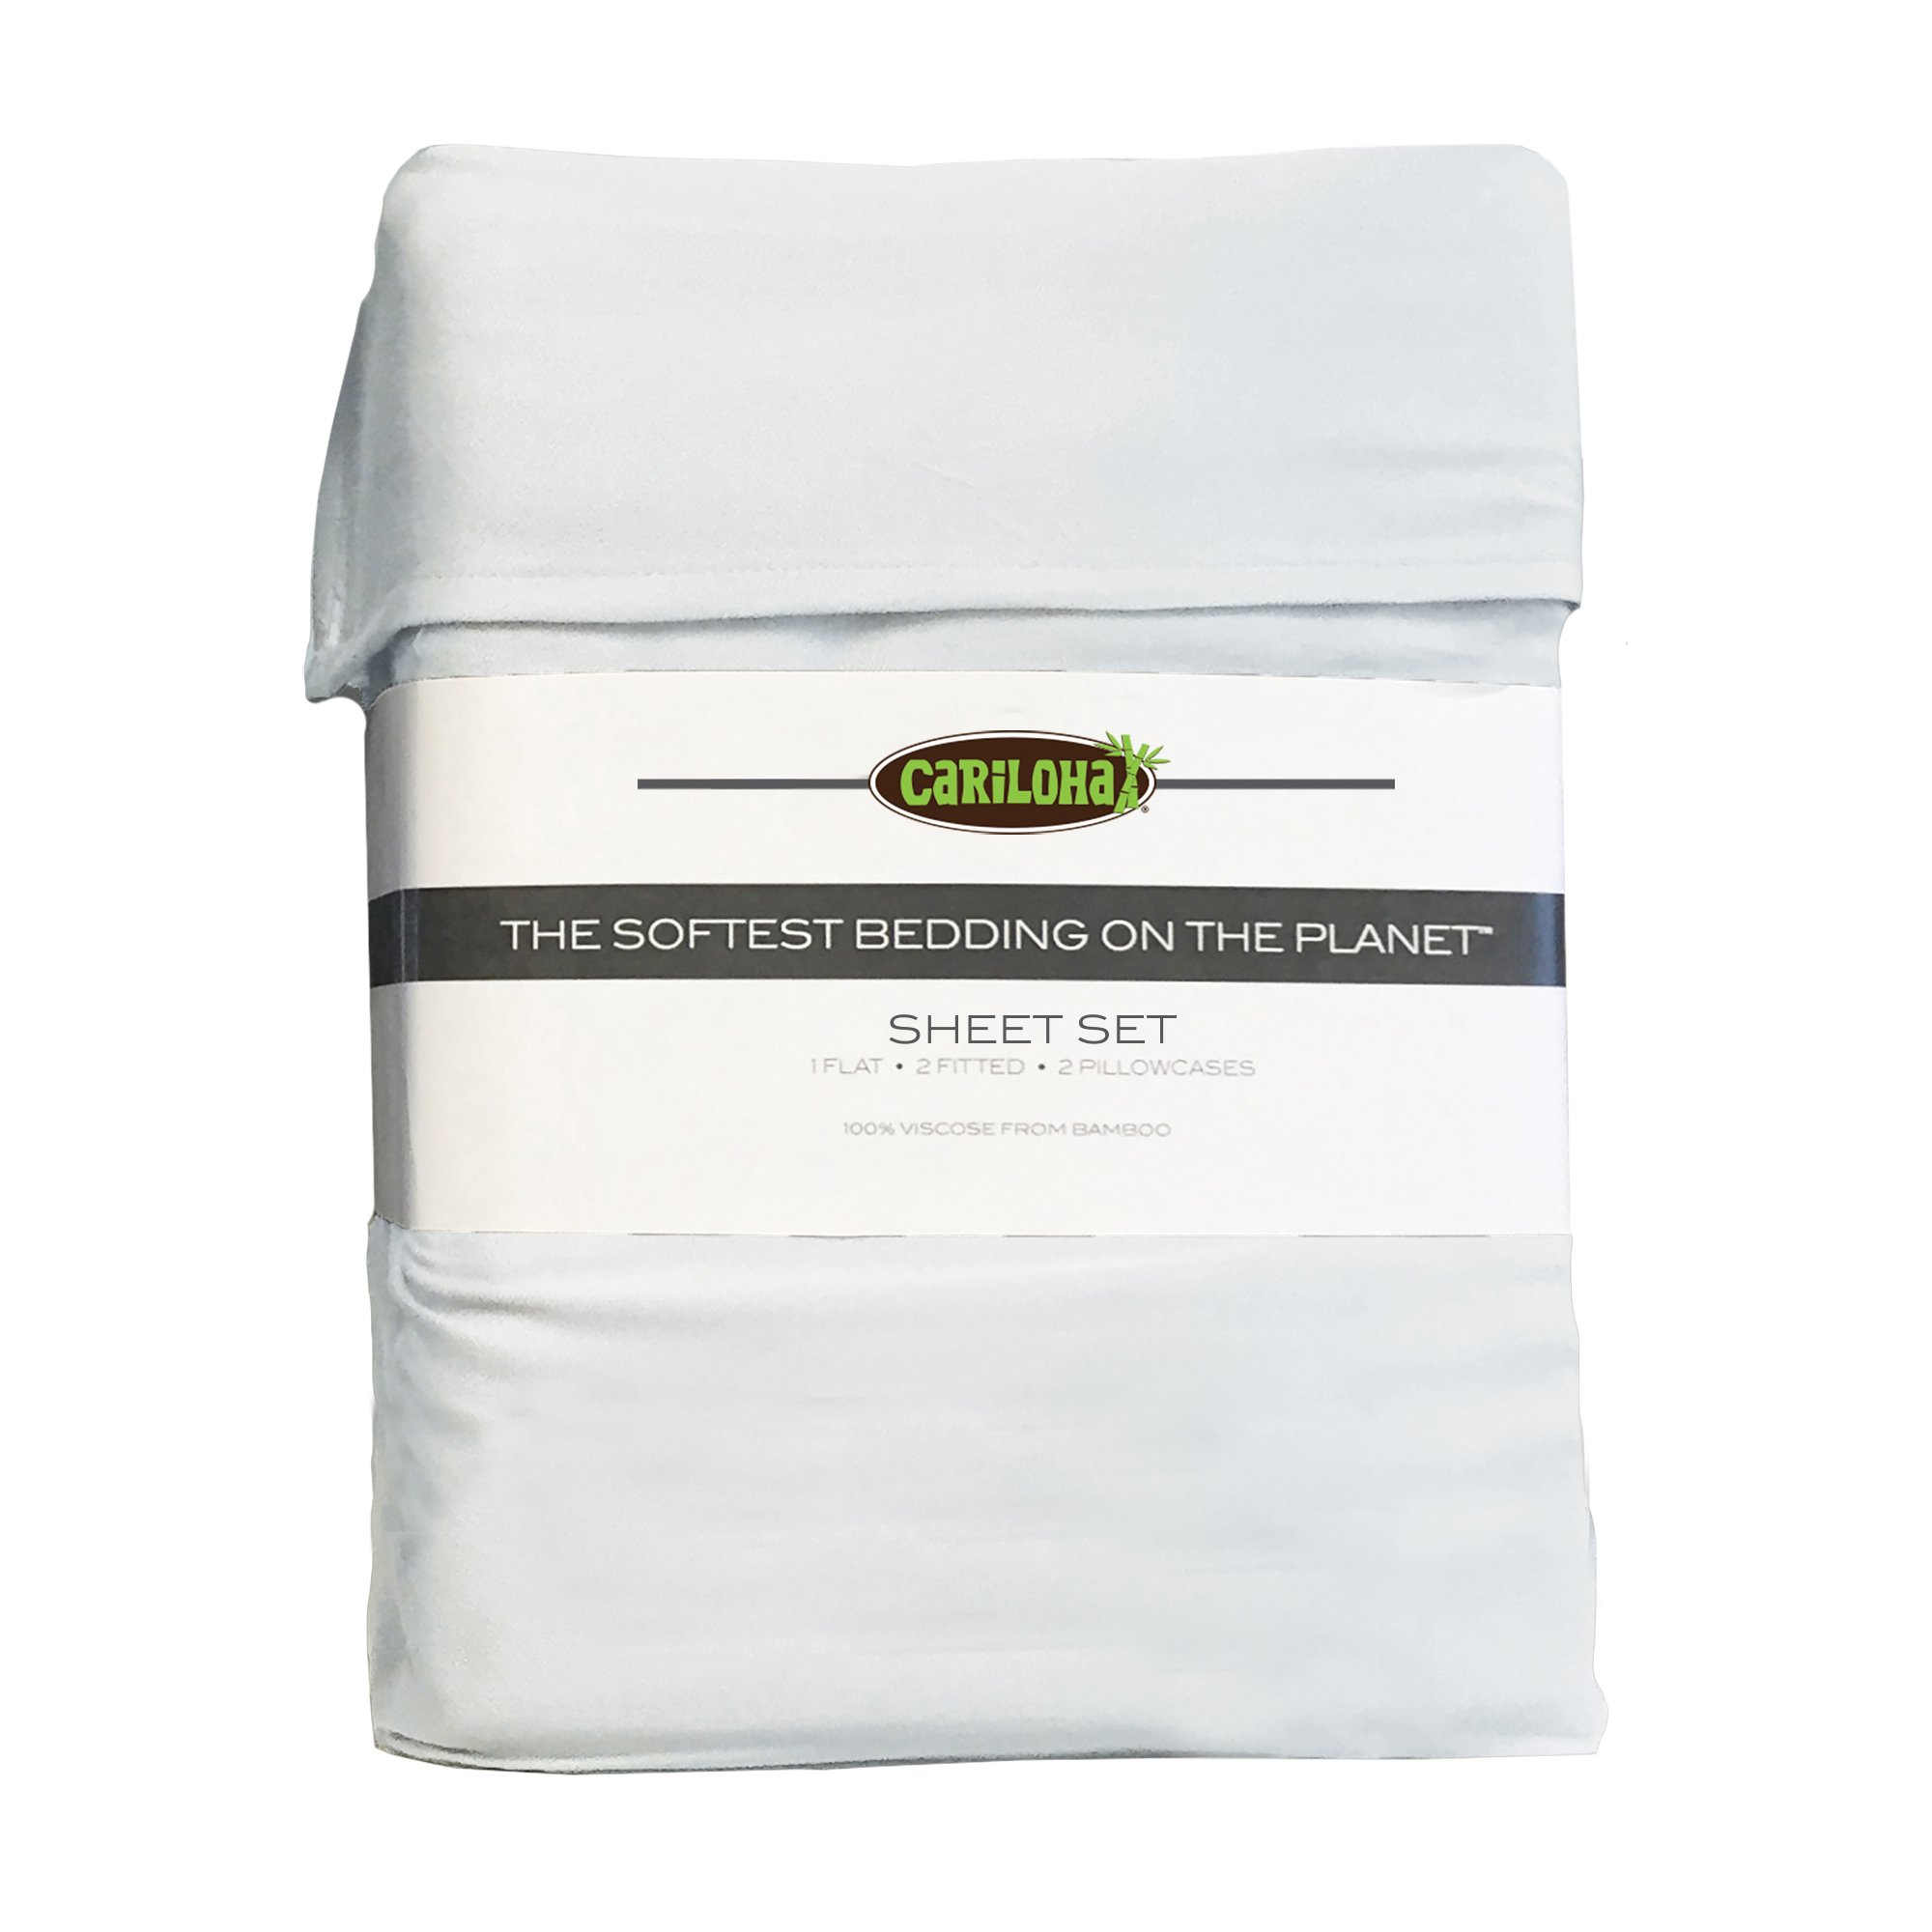 Classic Bamboo Sheets by Cariloha - 4 Piece Bed Sheet Set - Softest Bed Sheets and Pillow Cases - Lifetime Protection (Queen, White) by Cariloha (Image #3)